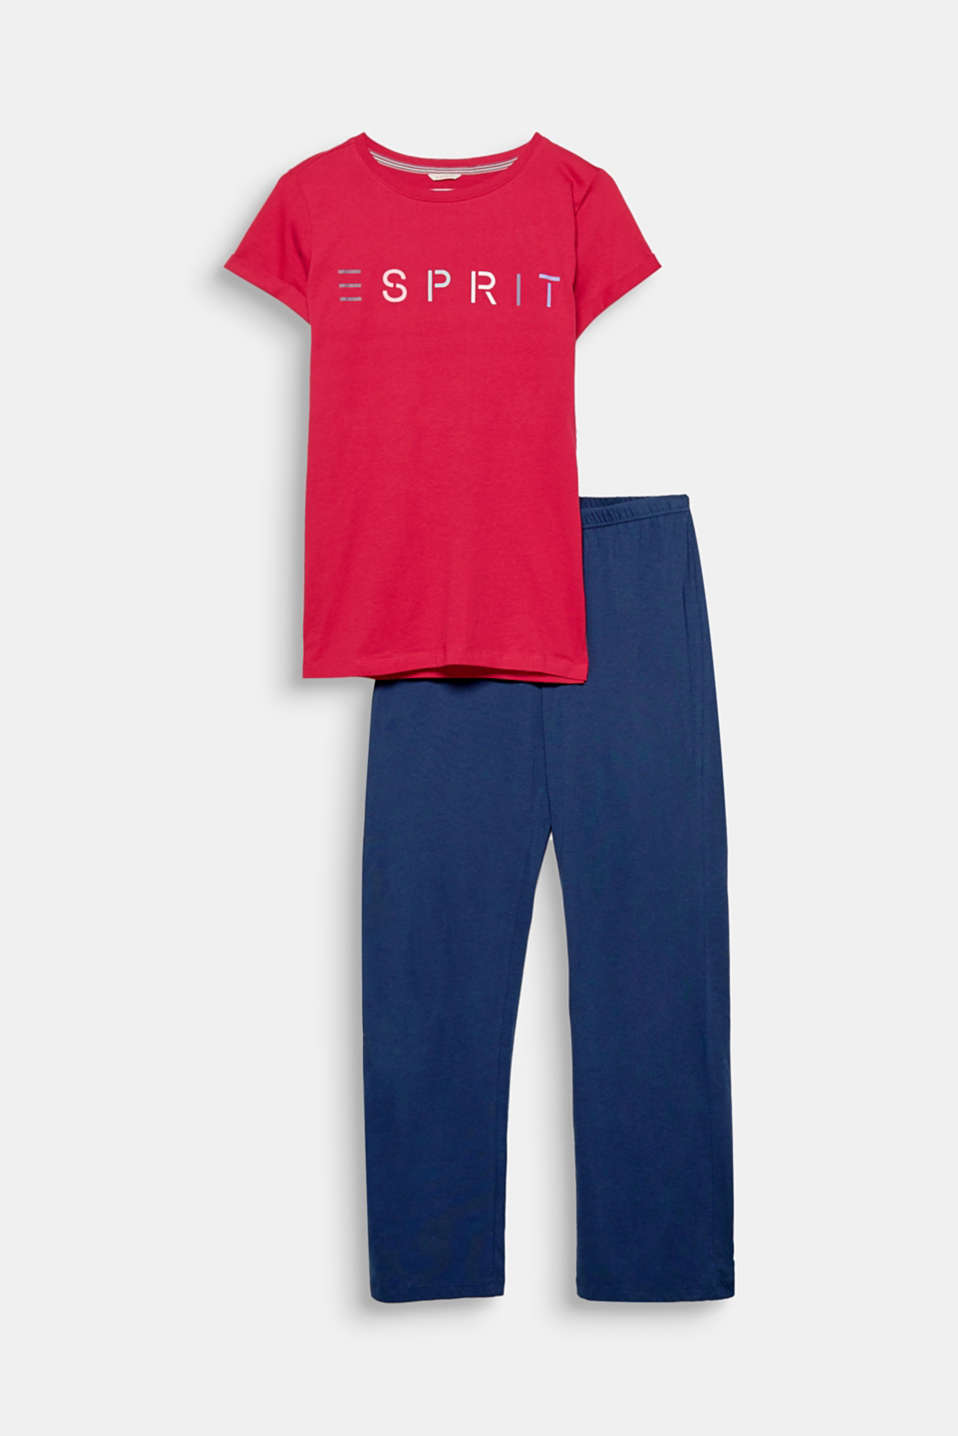 These logo pyjamas in soft cotton jersey promise maximum comfort and an extra helping of style.